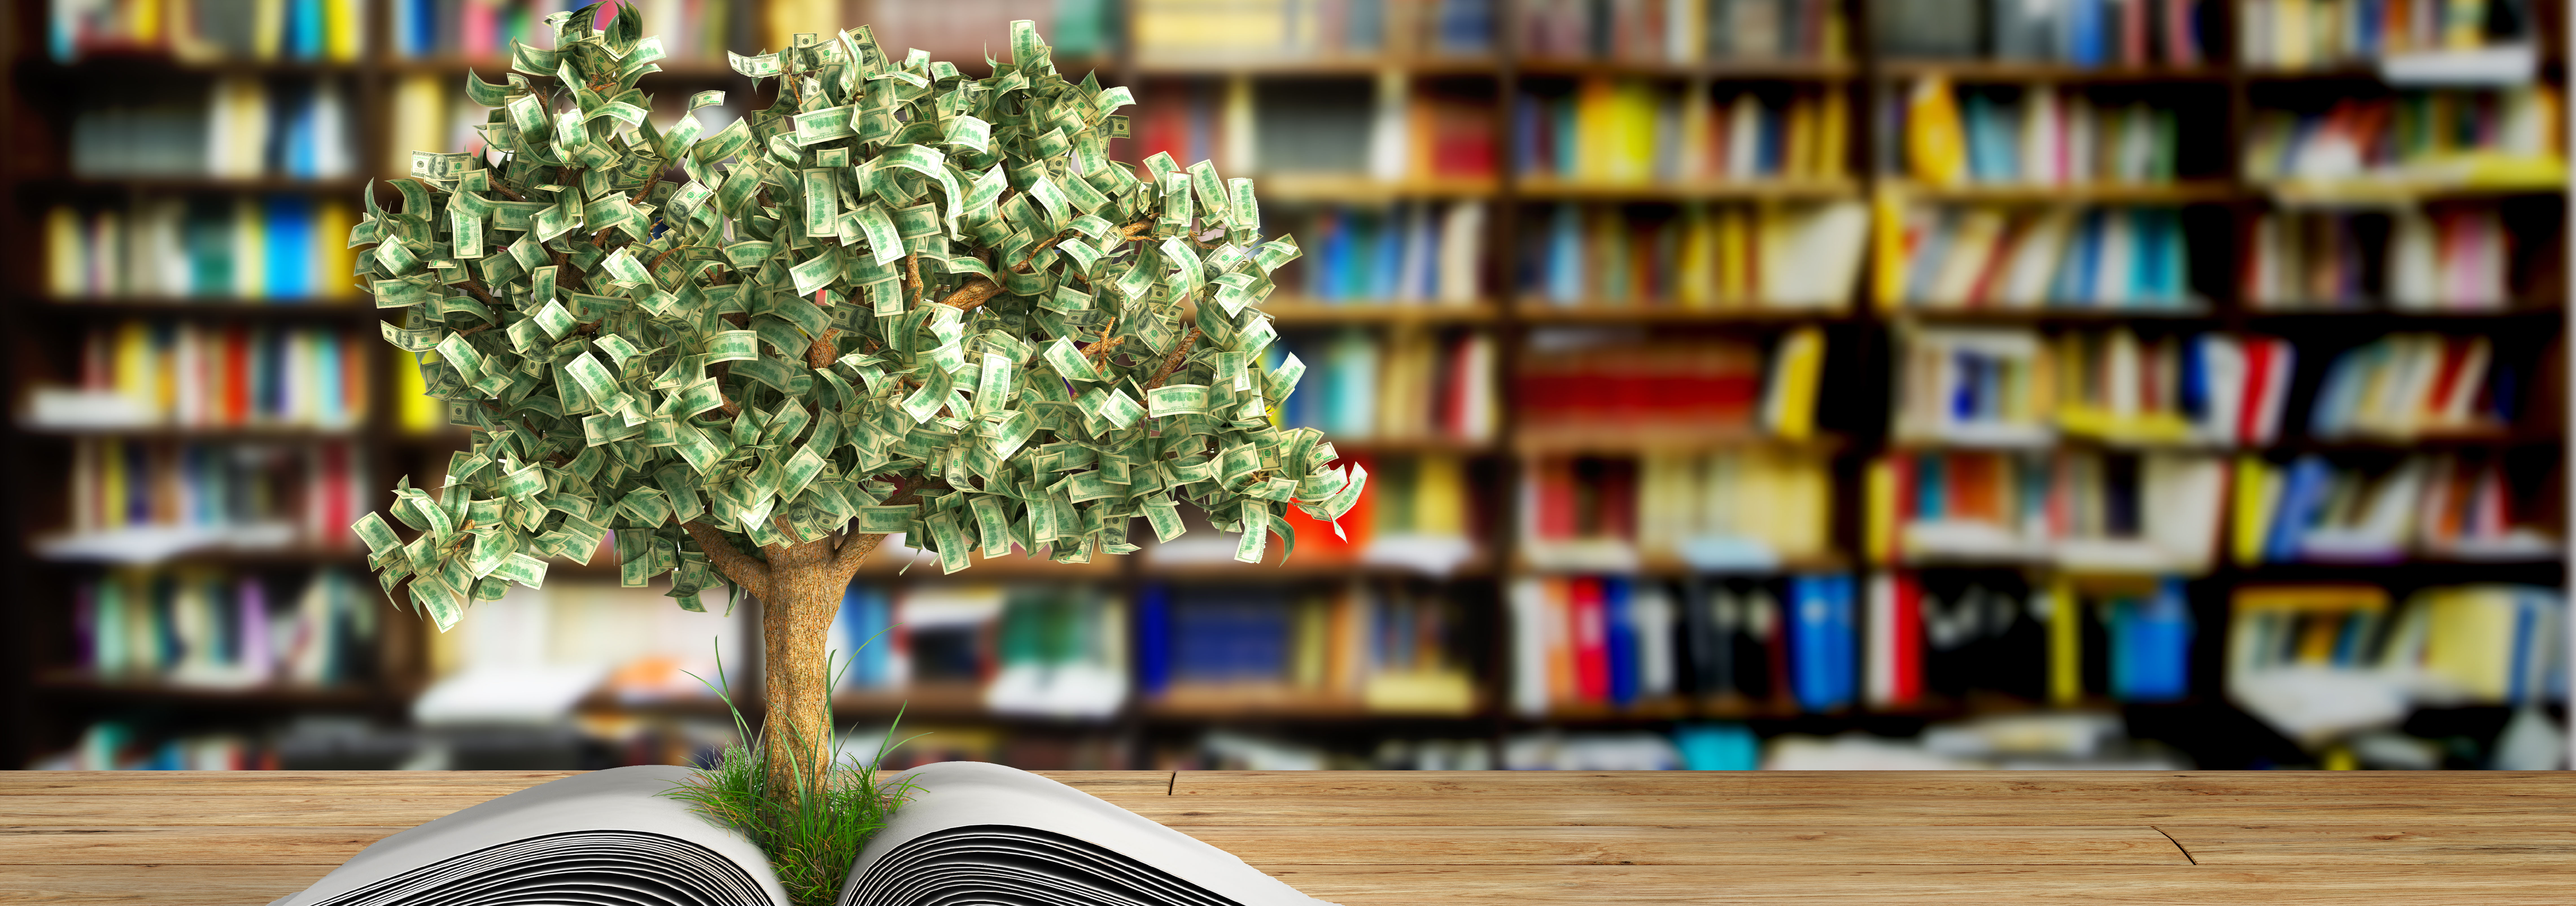 A money tree coming out of a book